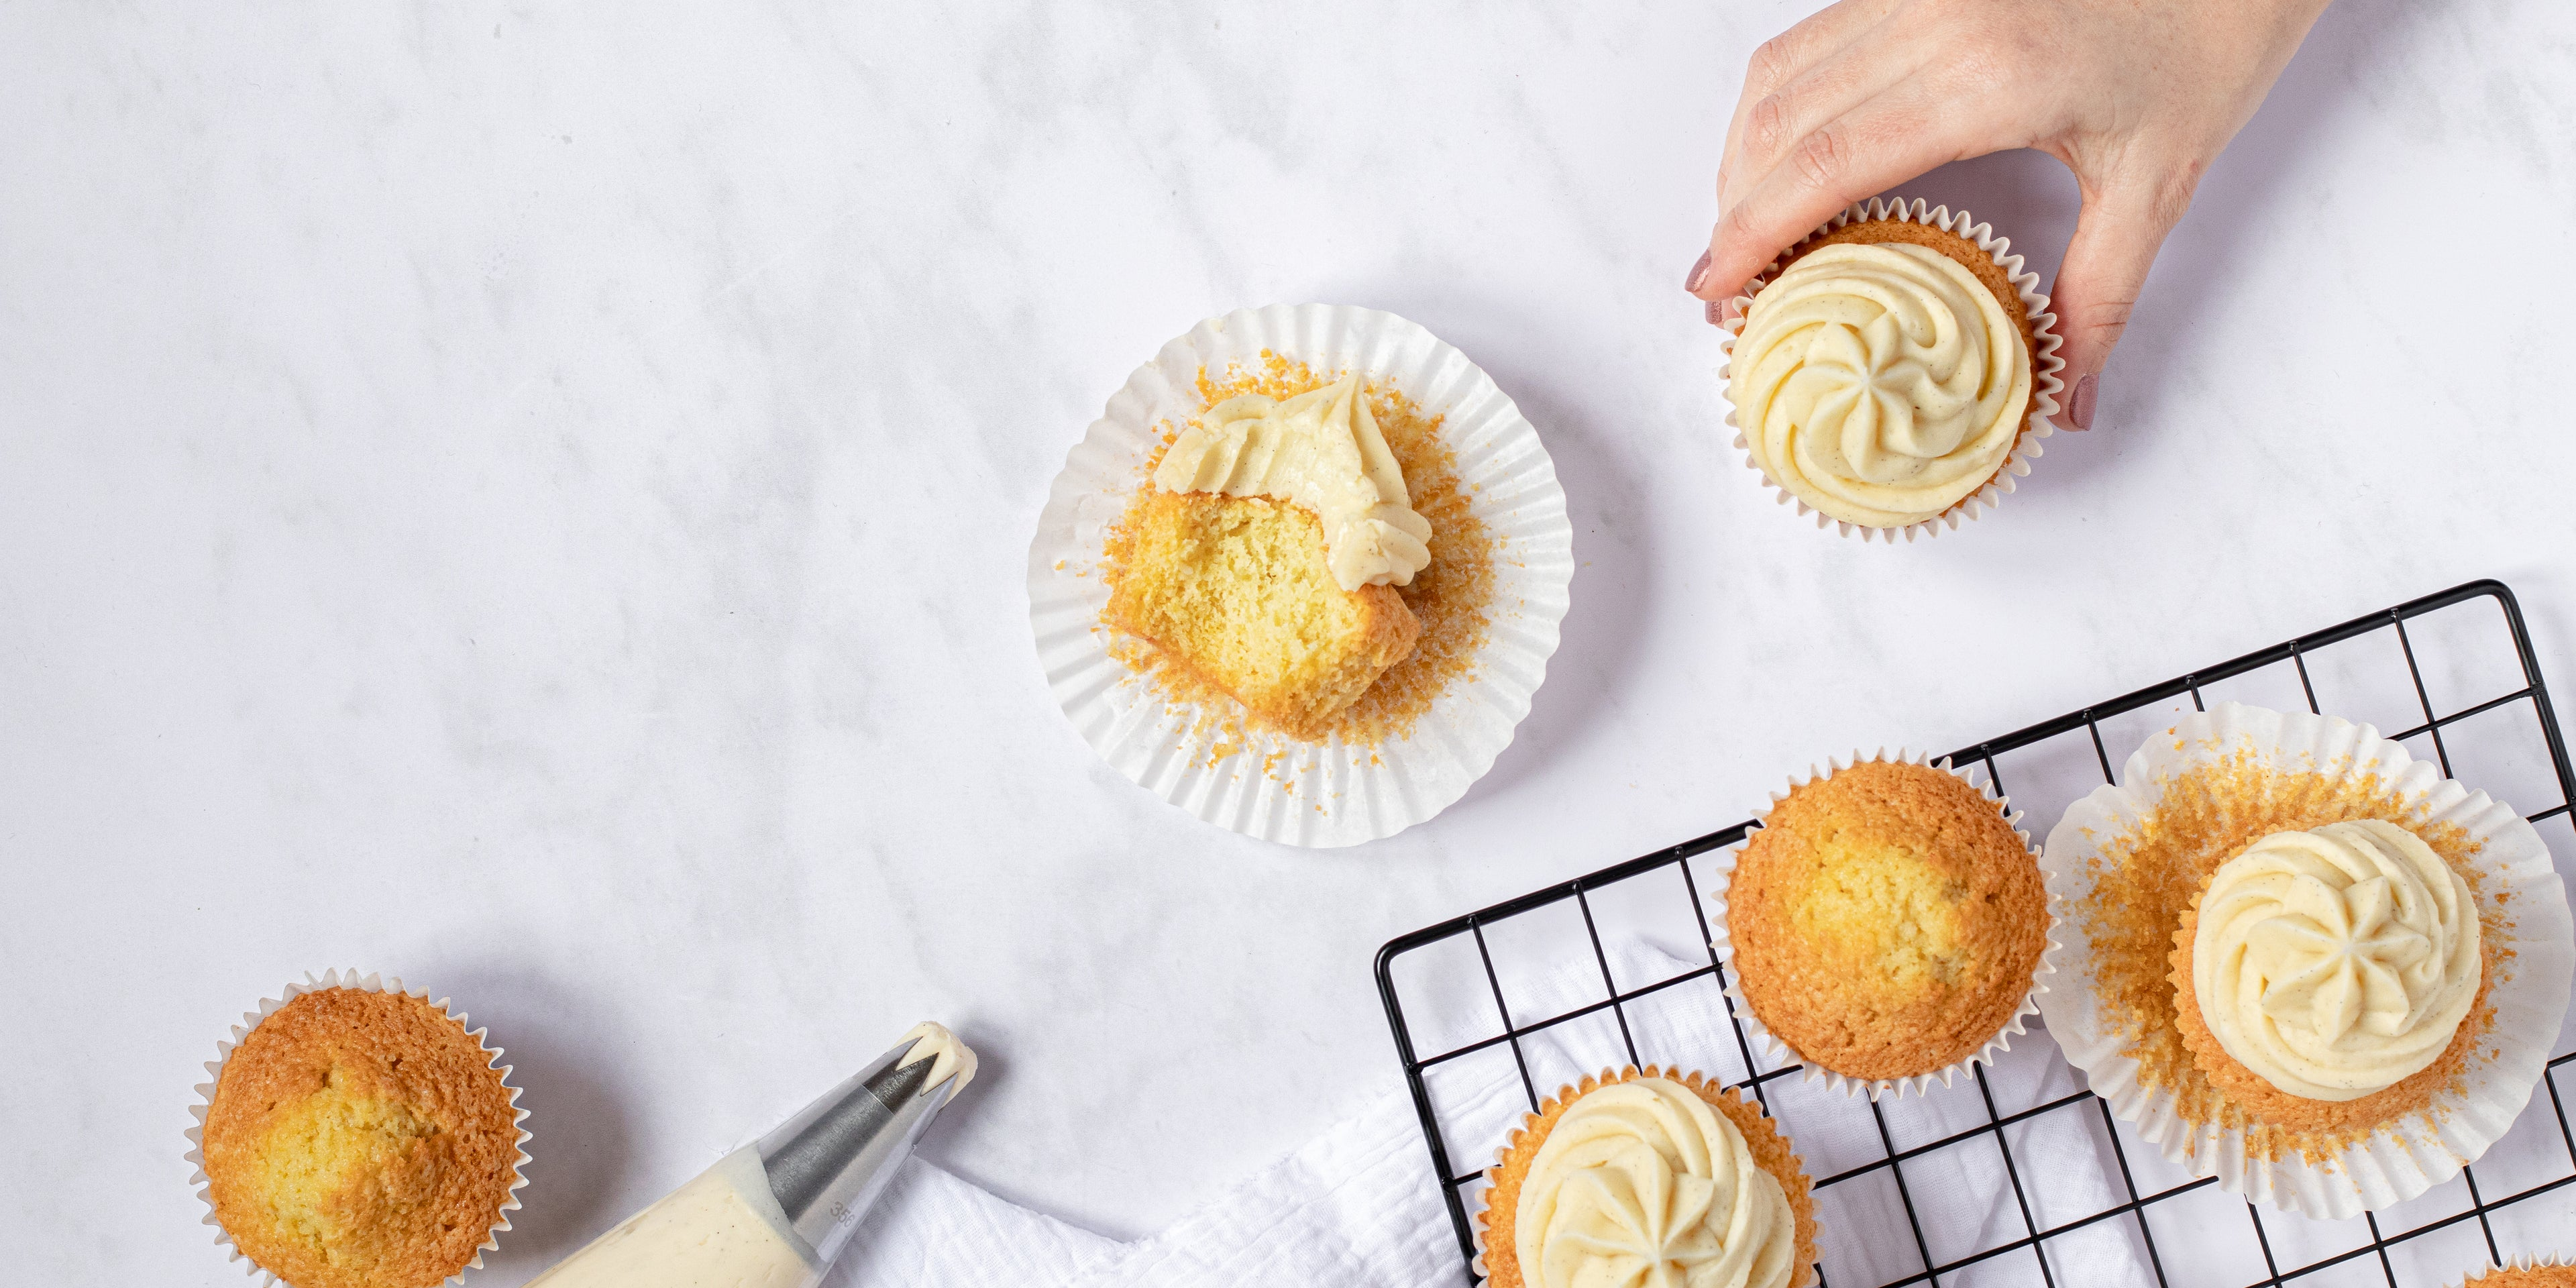 Vanilla cupcakes on a baking tray and table topped with vanilla buttercream